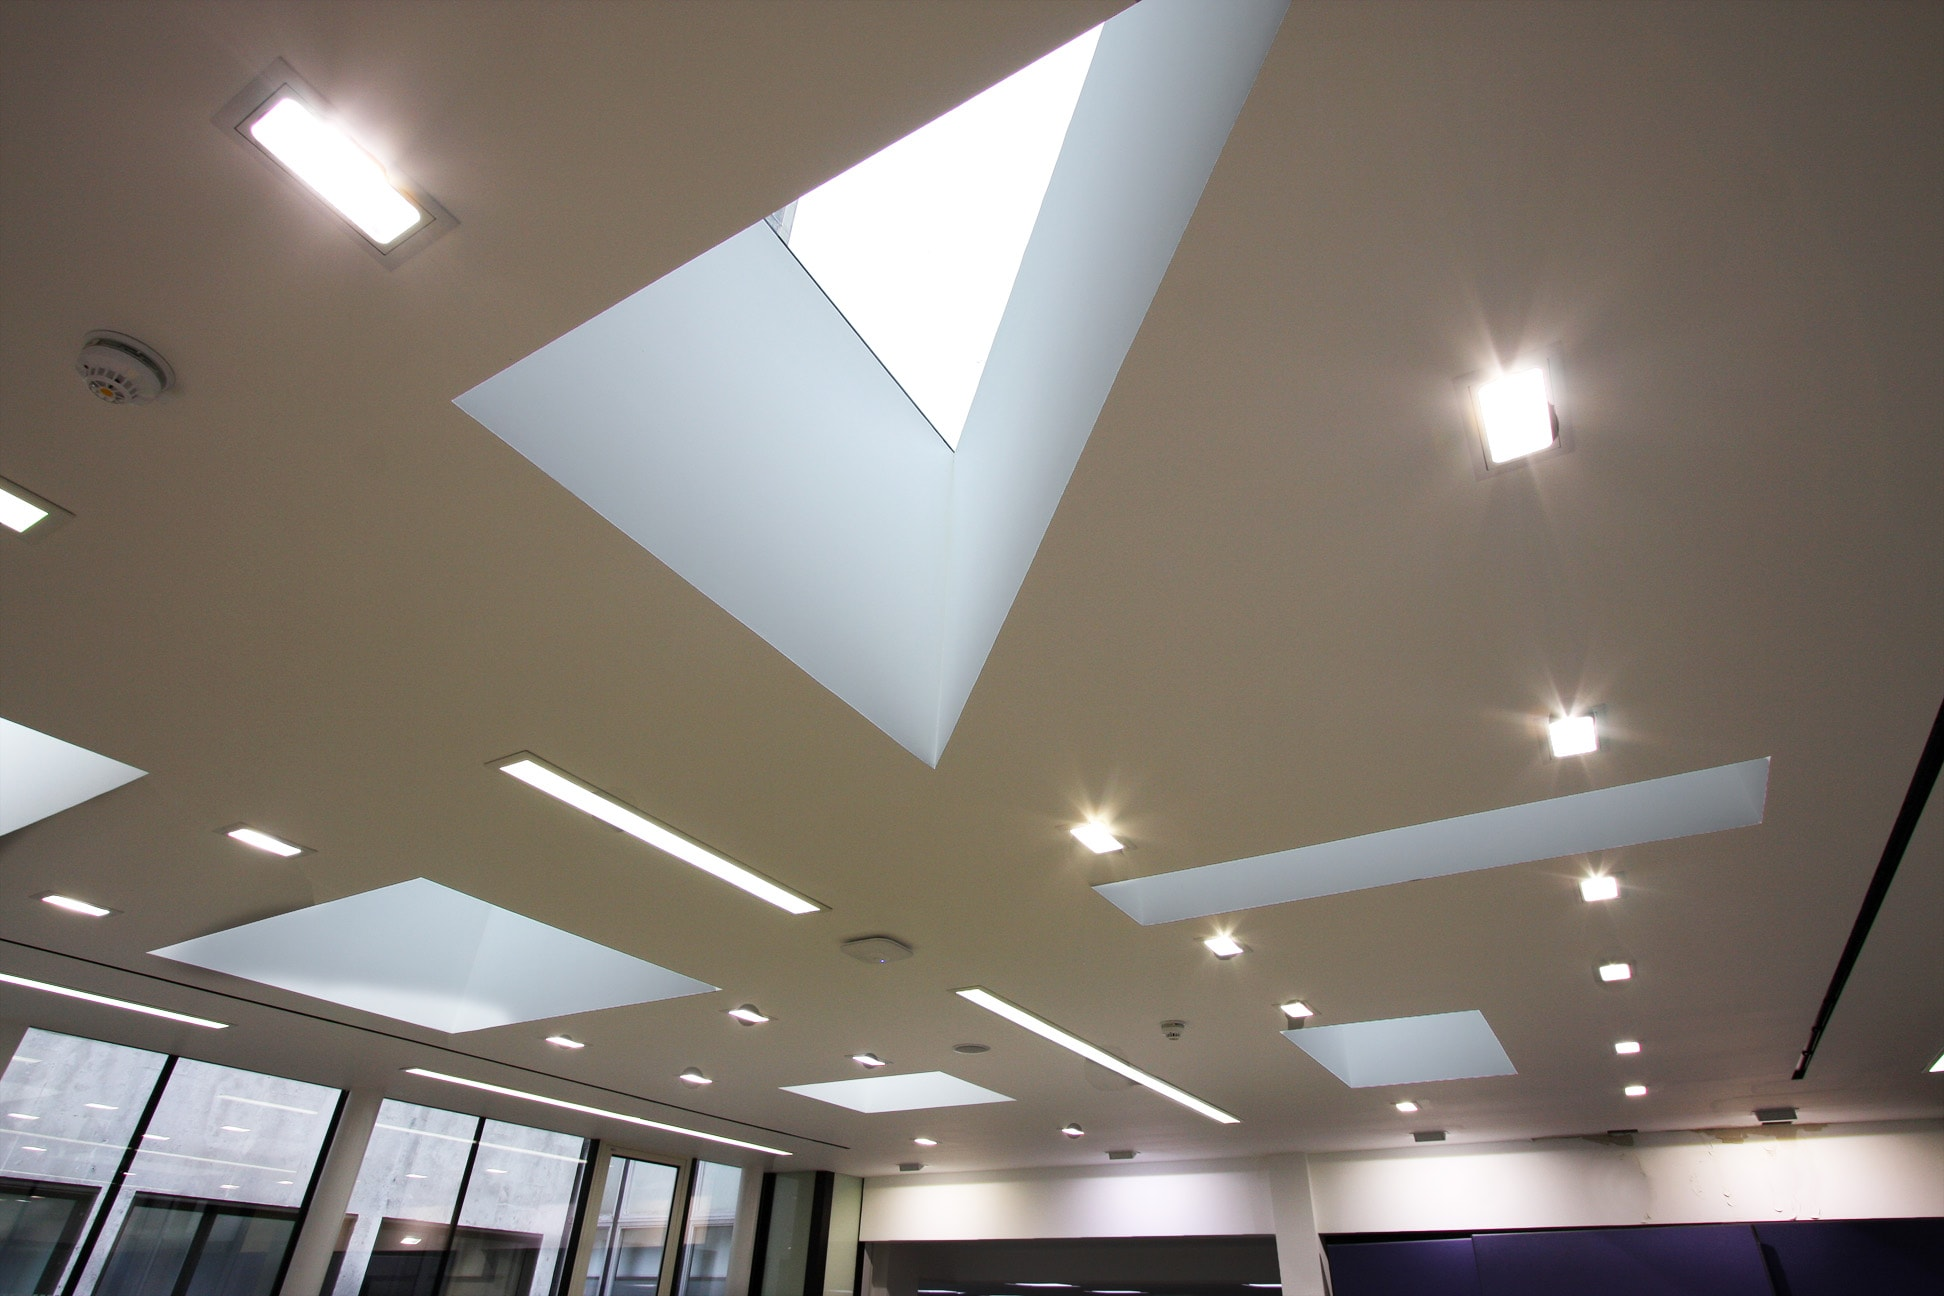 Frameless venting rooflights in triangle and square configurations